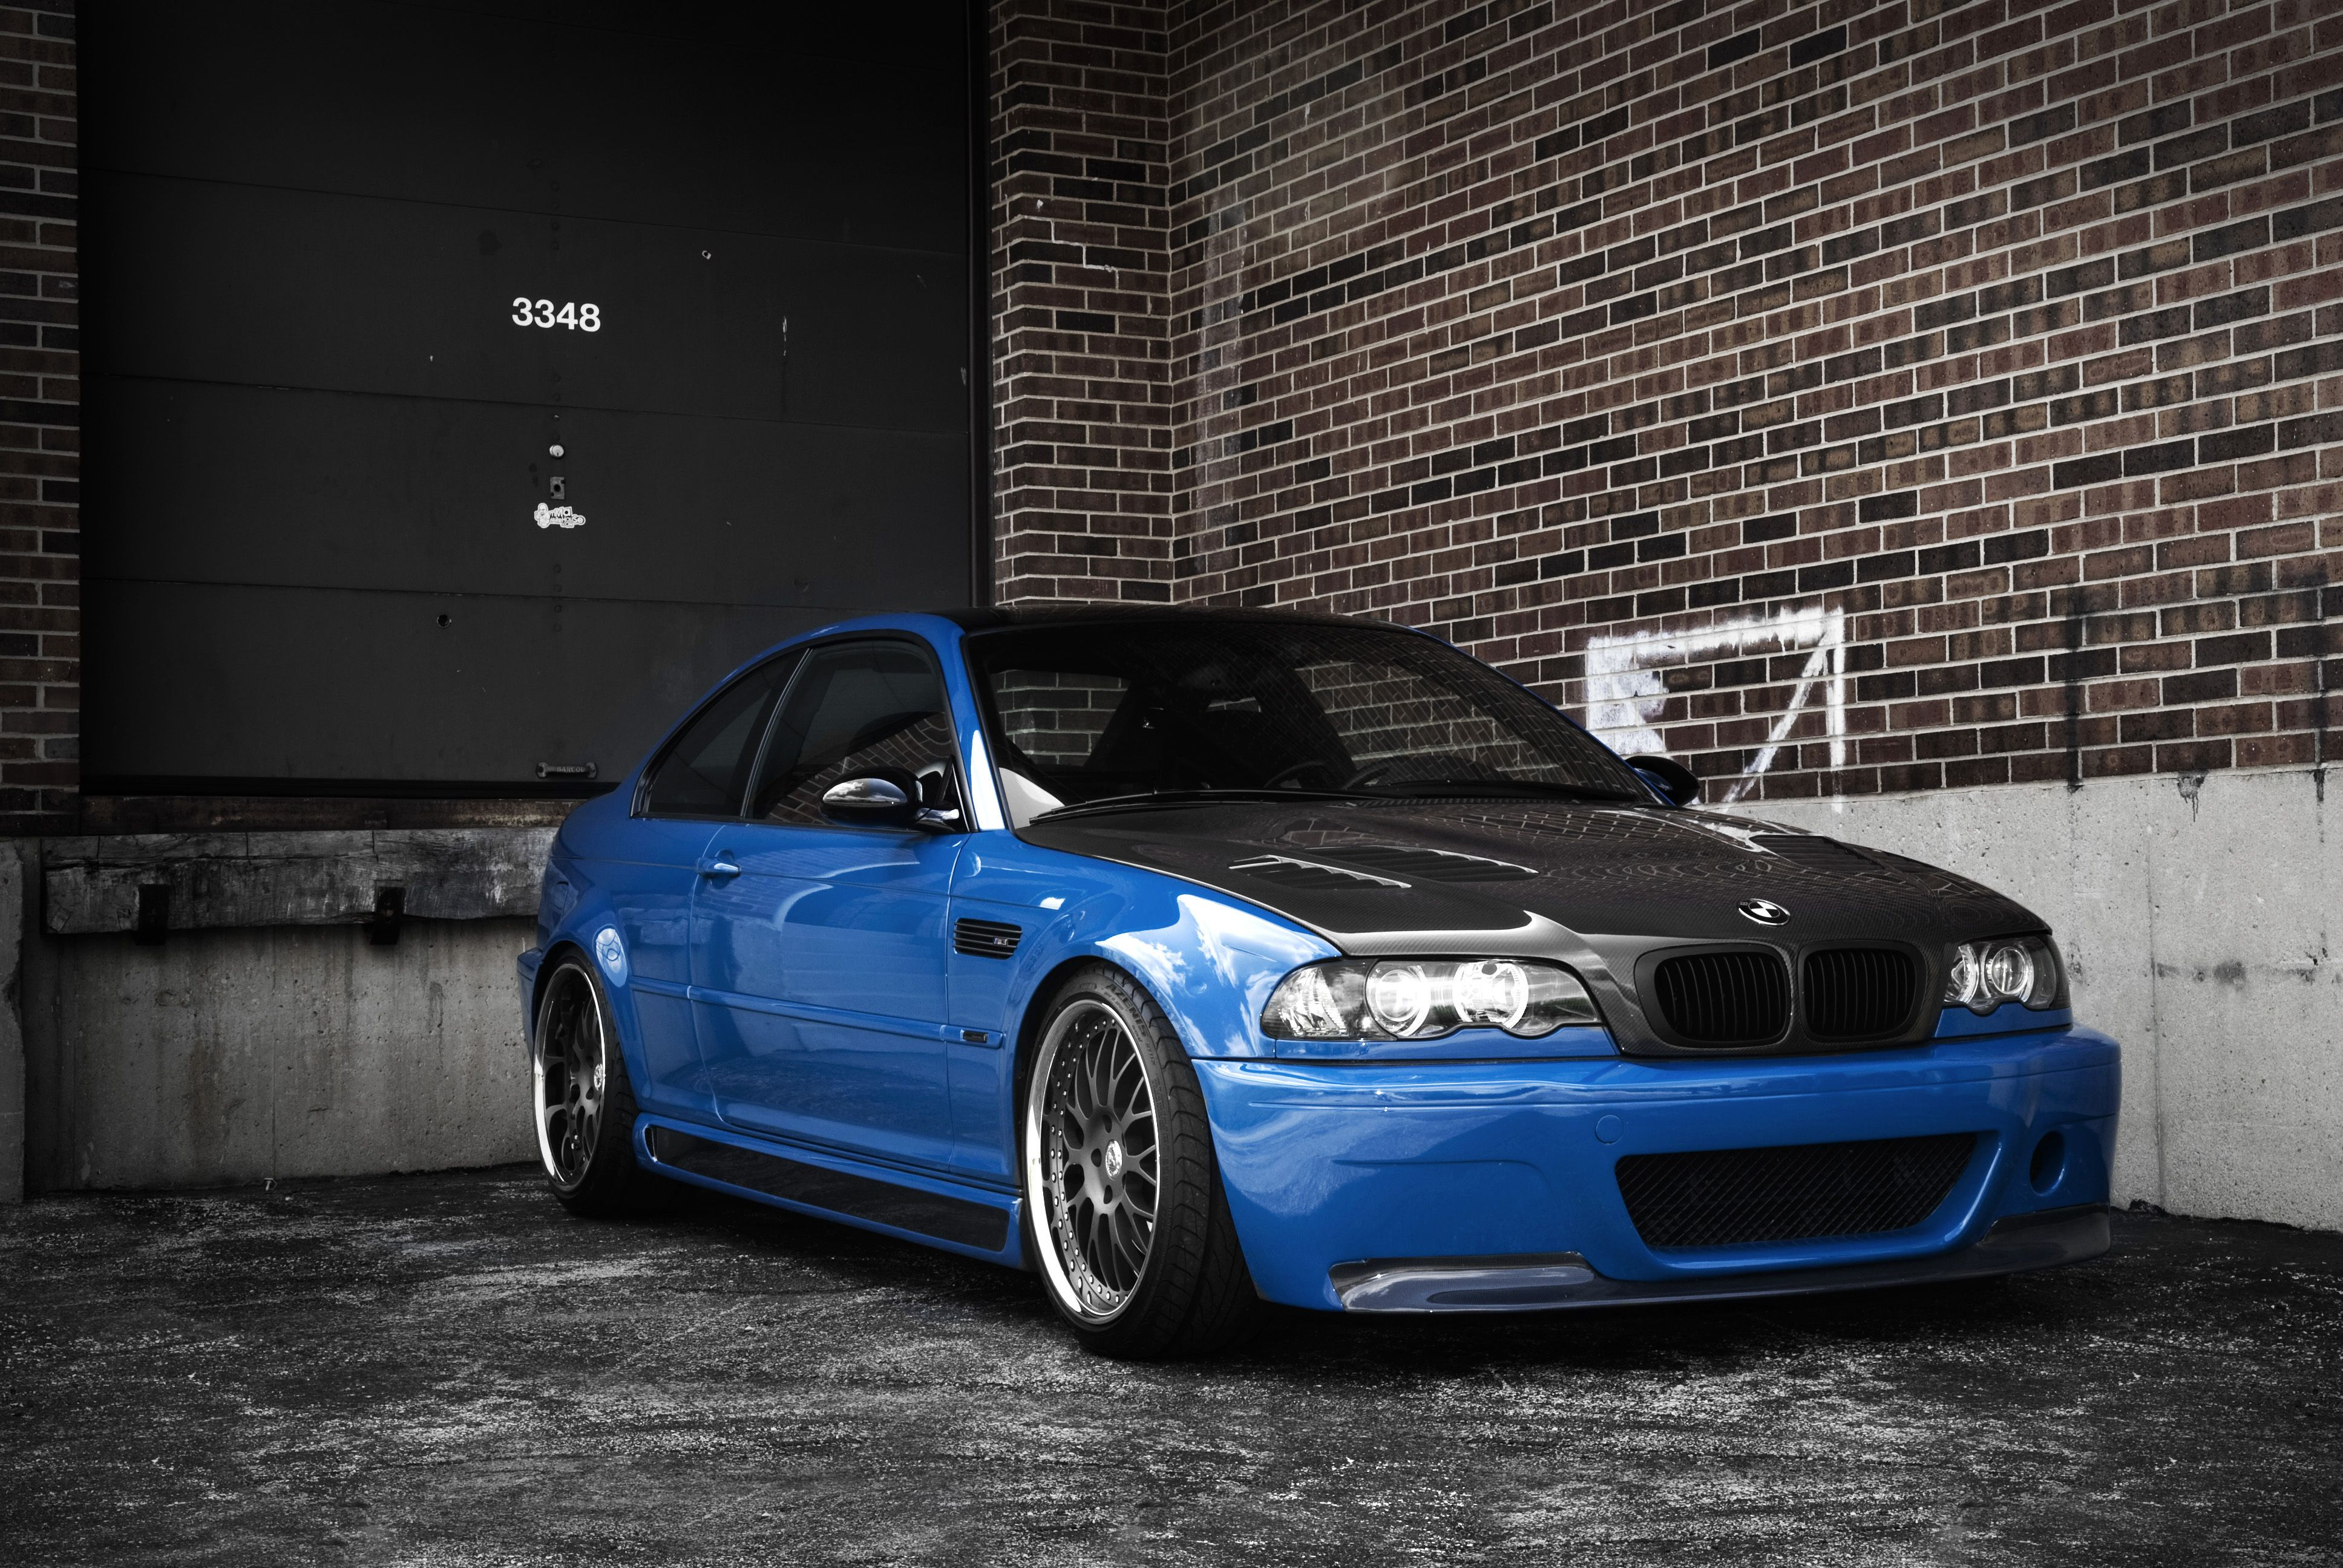 bmw m3 coupe blue wallm january 30 2013 3872x2592. Black Bedroom Furniture Sets. Home Design Ideas